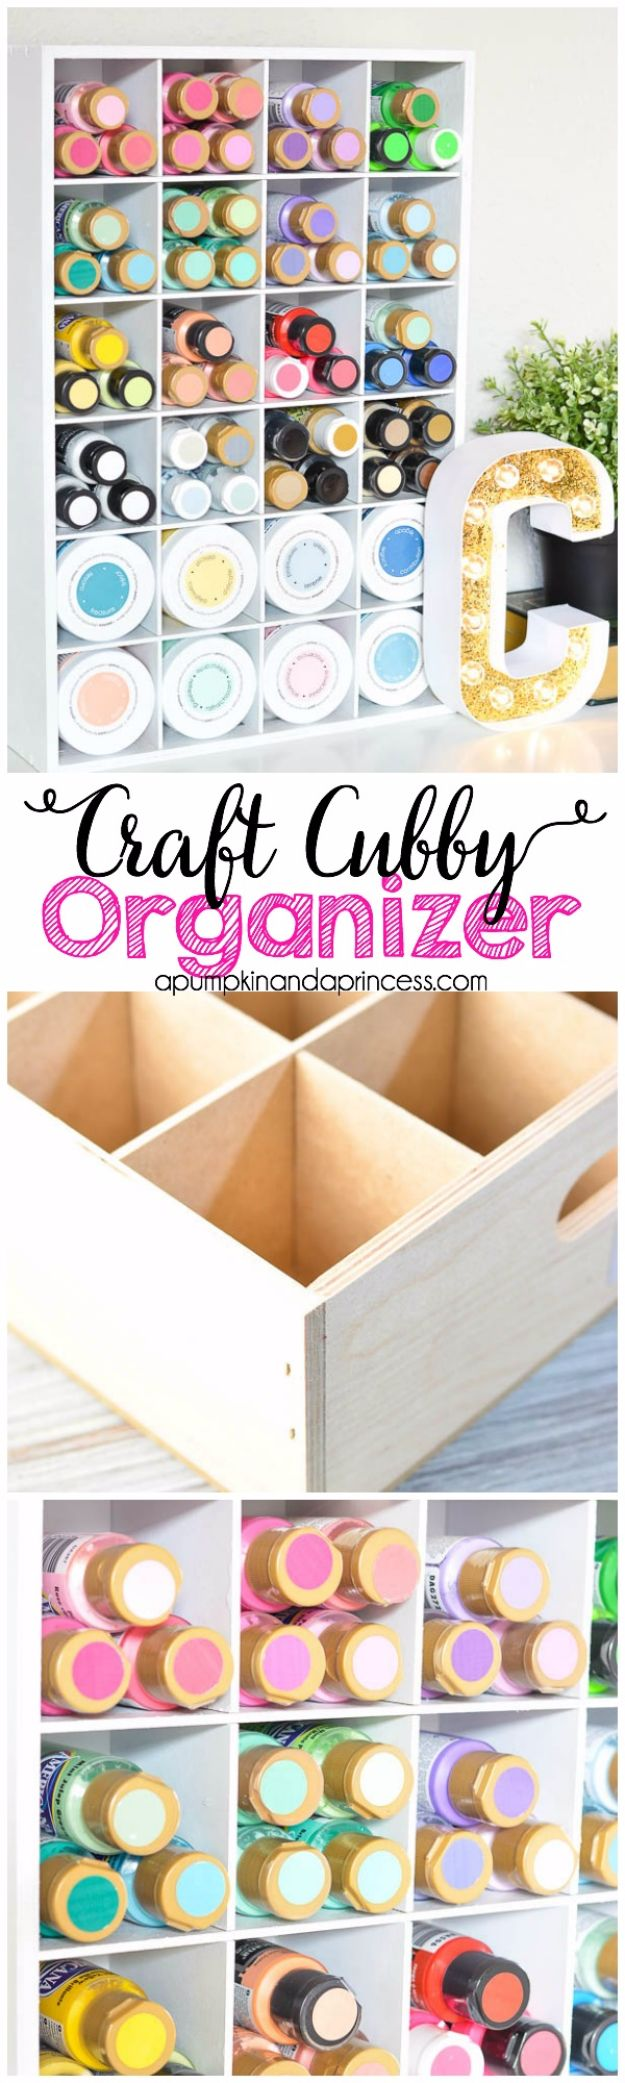 DIY Craft Room Storage Ideas and Craft Room Organization Projects - Craft Cubby Organizer - Cool Ideas for Do It Yourself Craft Storage, Craft Room Decor and Organizing Project Ideas - fabric, paper, pens, creative tools, crafts supplies, shelves and sewing notions #diyideas #craftroom